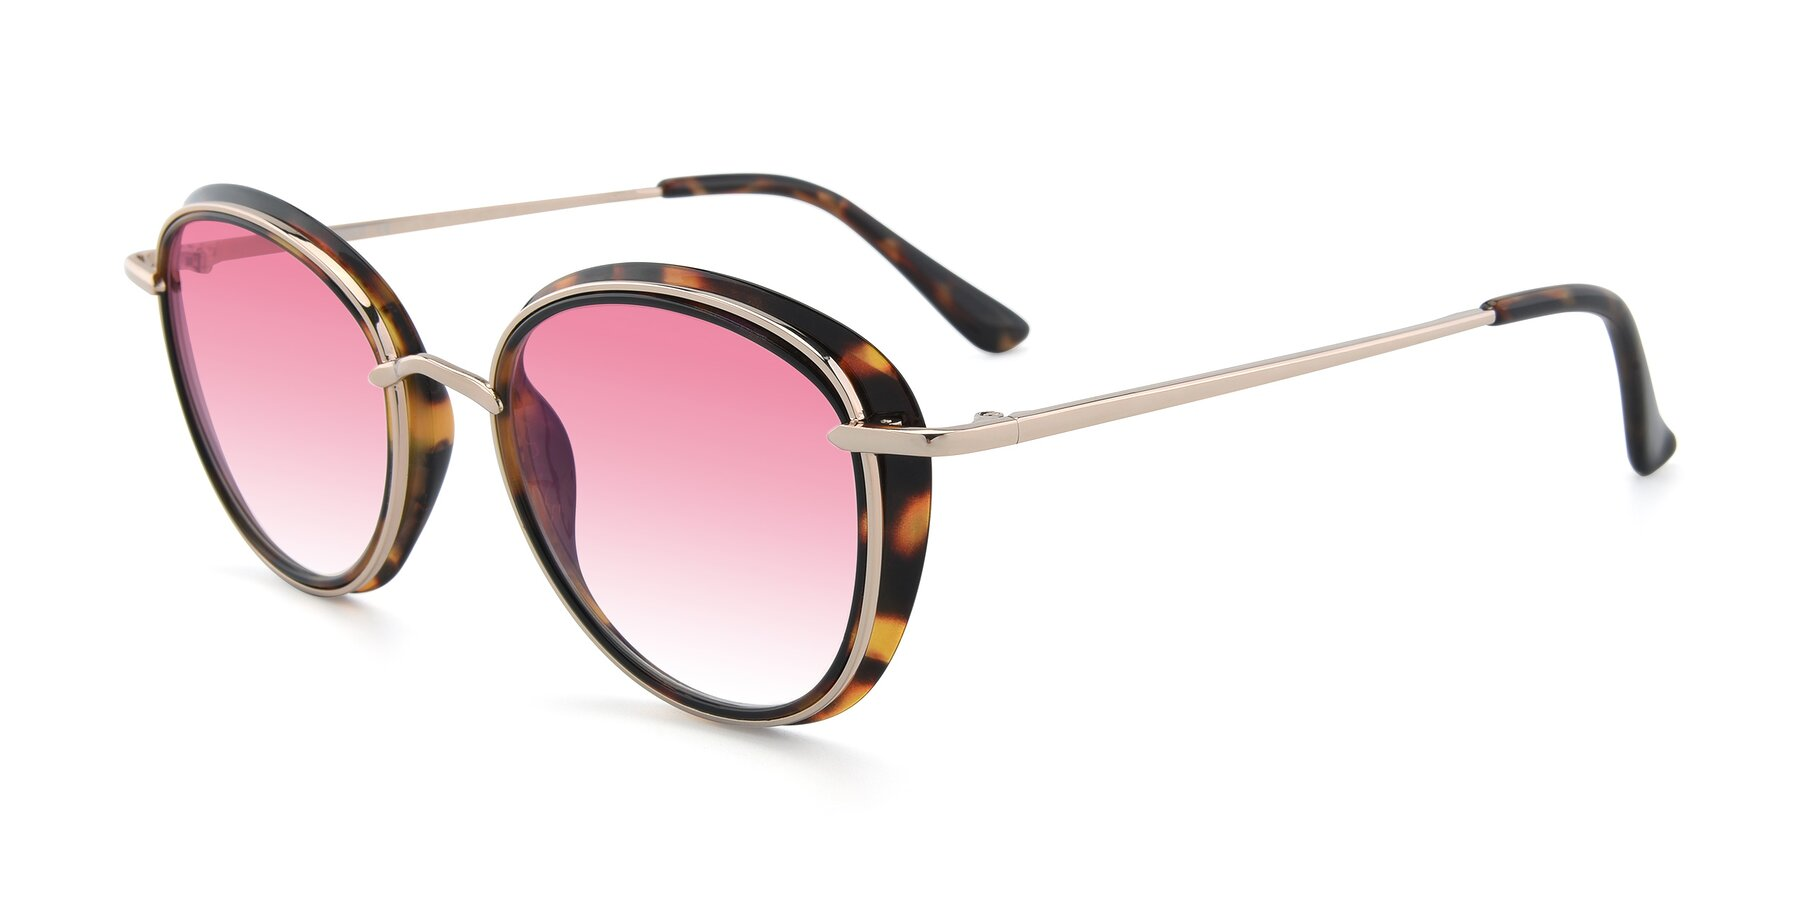 Angle of Cosmopolitan in Tortoise-Silver with Pink Gradient Lenses